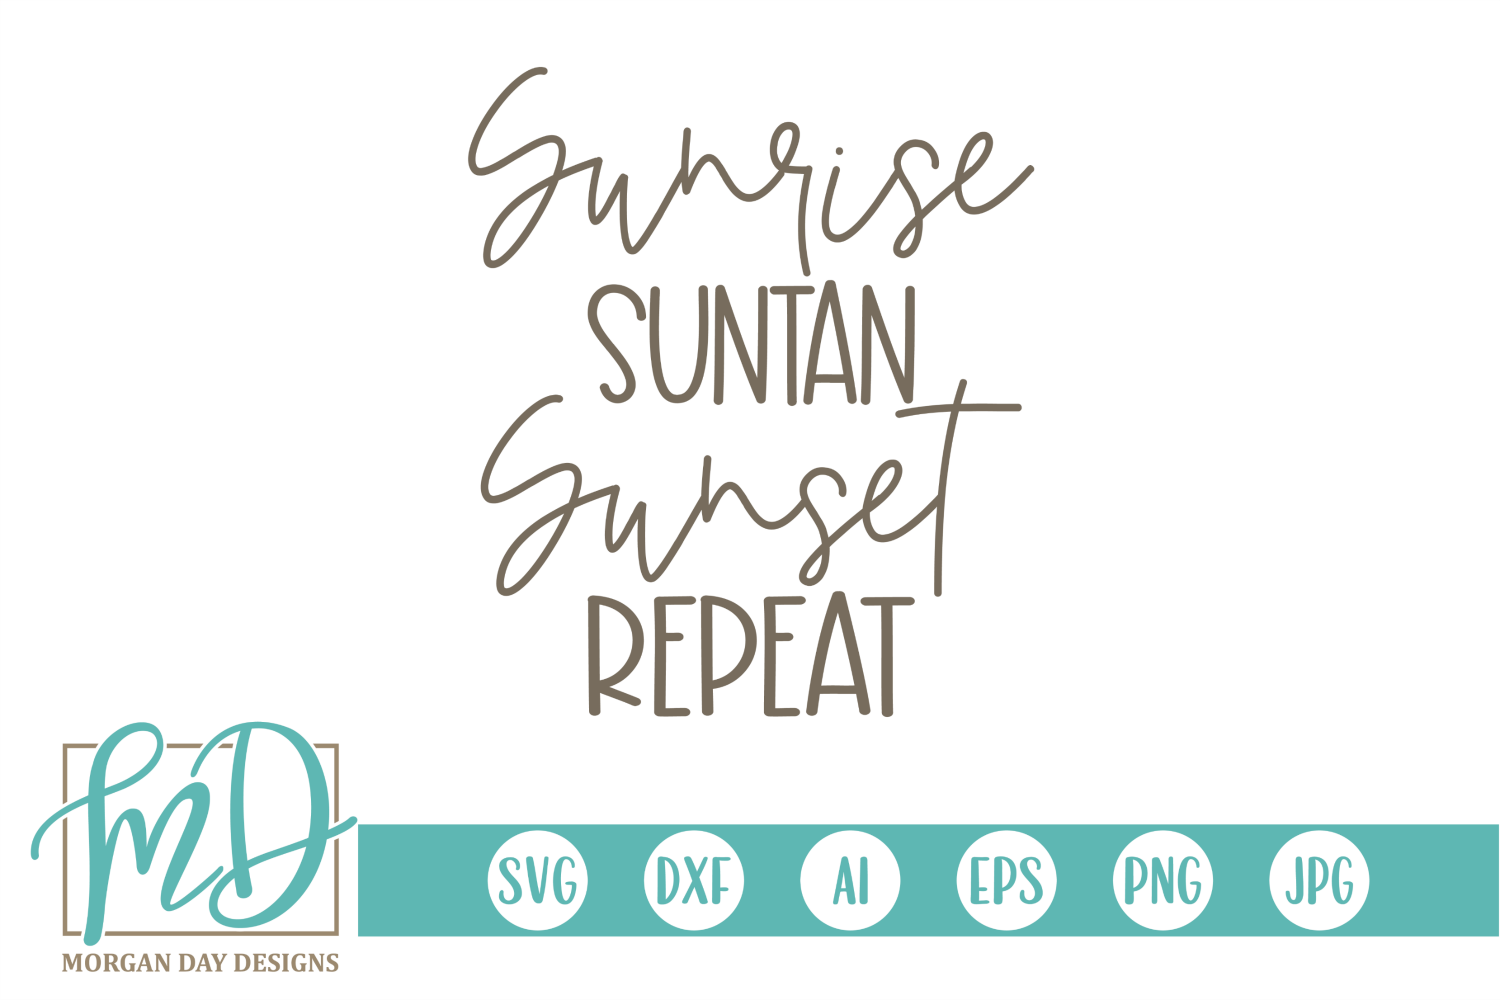 Download Free Sunrise Suntan Sunset Repeat Svg Graphic By Morgan Day Designs for Cricut Explore, Silhouette and other cutting machines.